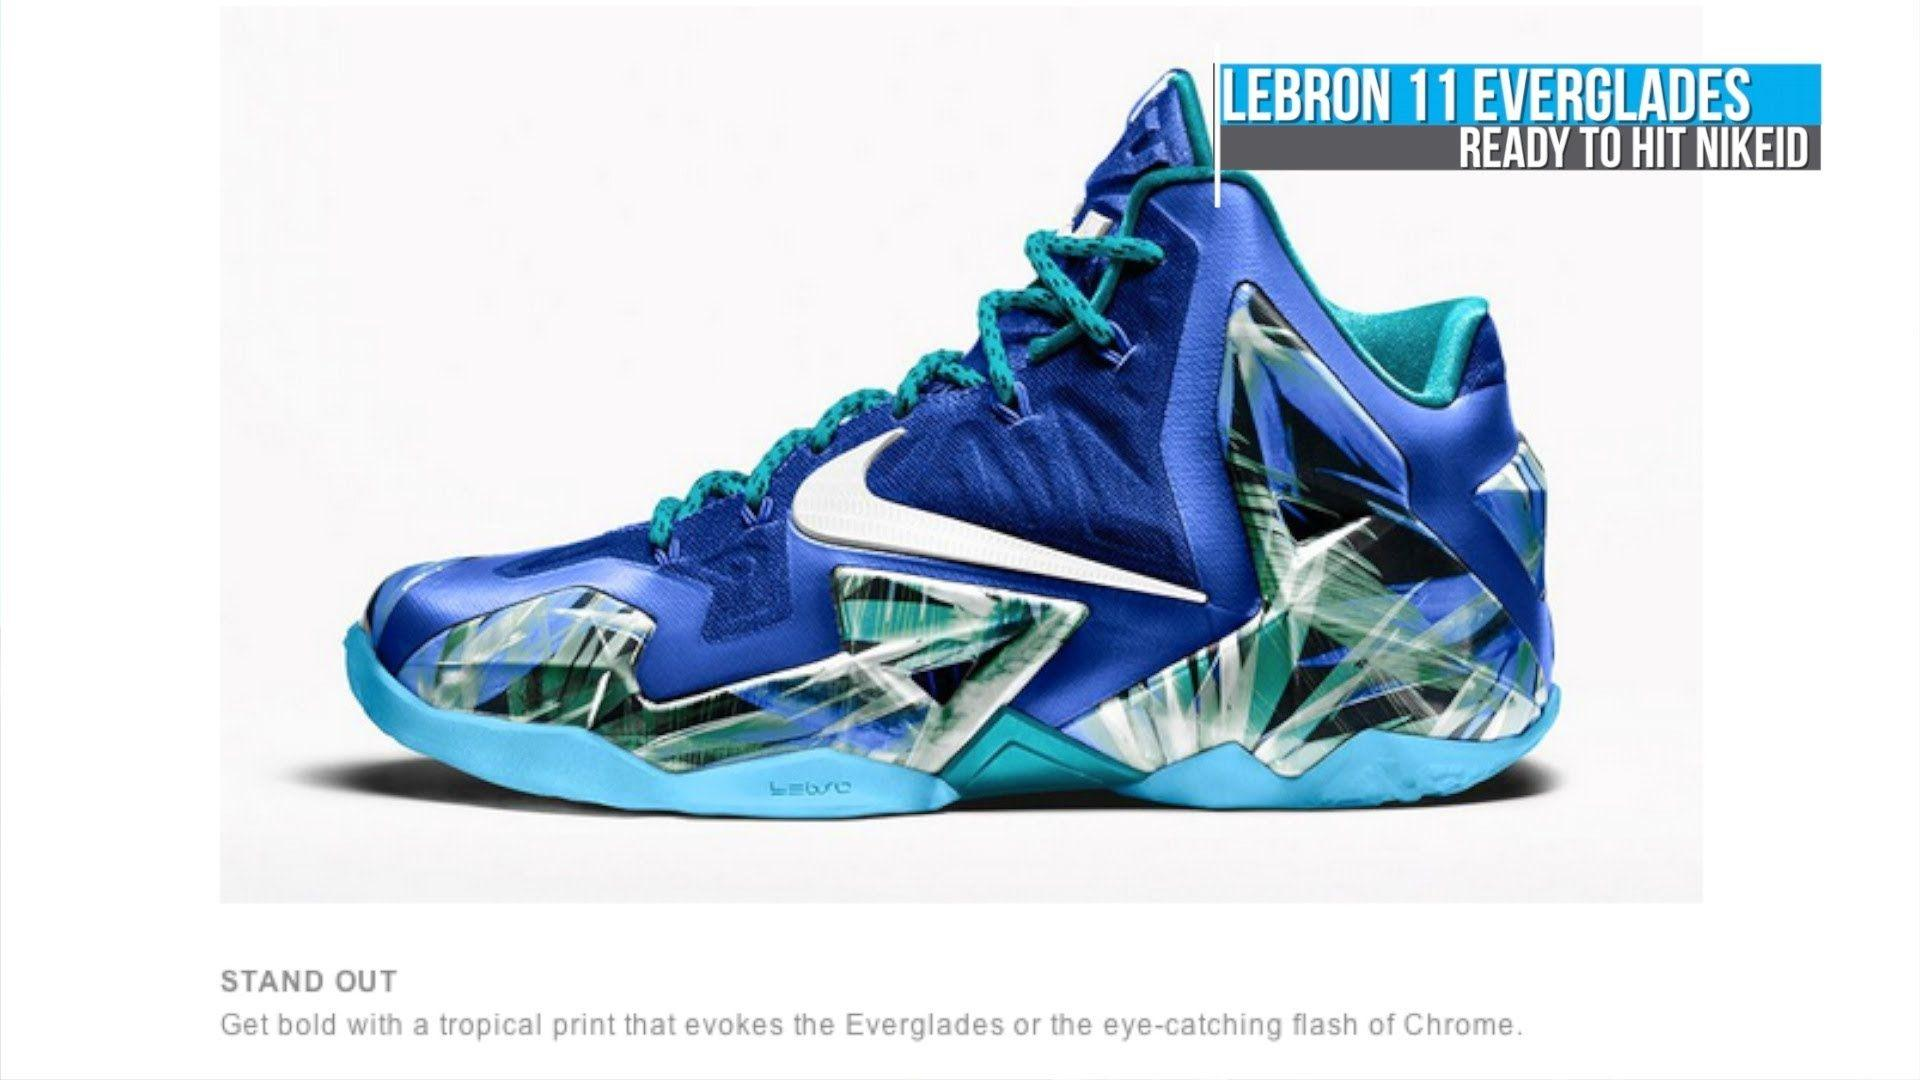 234799f4792f Kyrie Irving Shoes Wallpapers - Wallpaper Cave